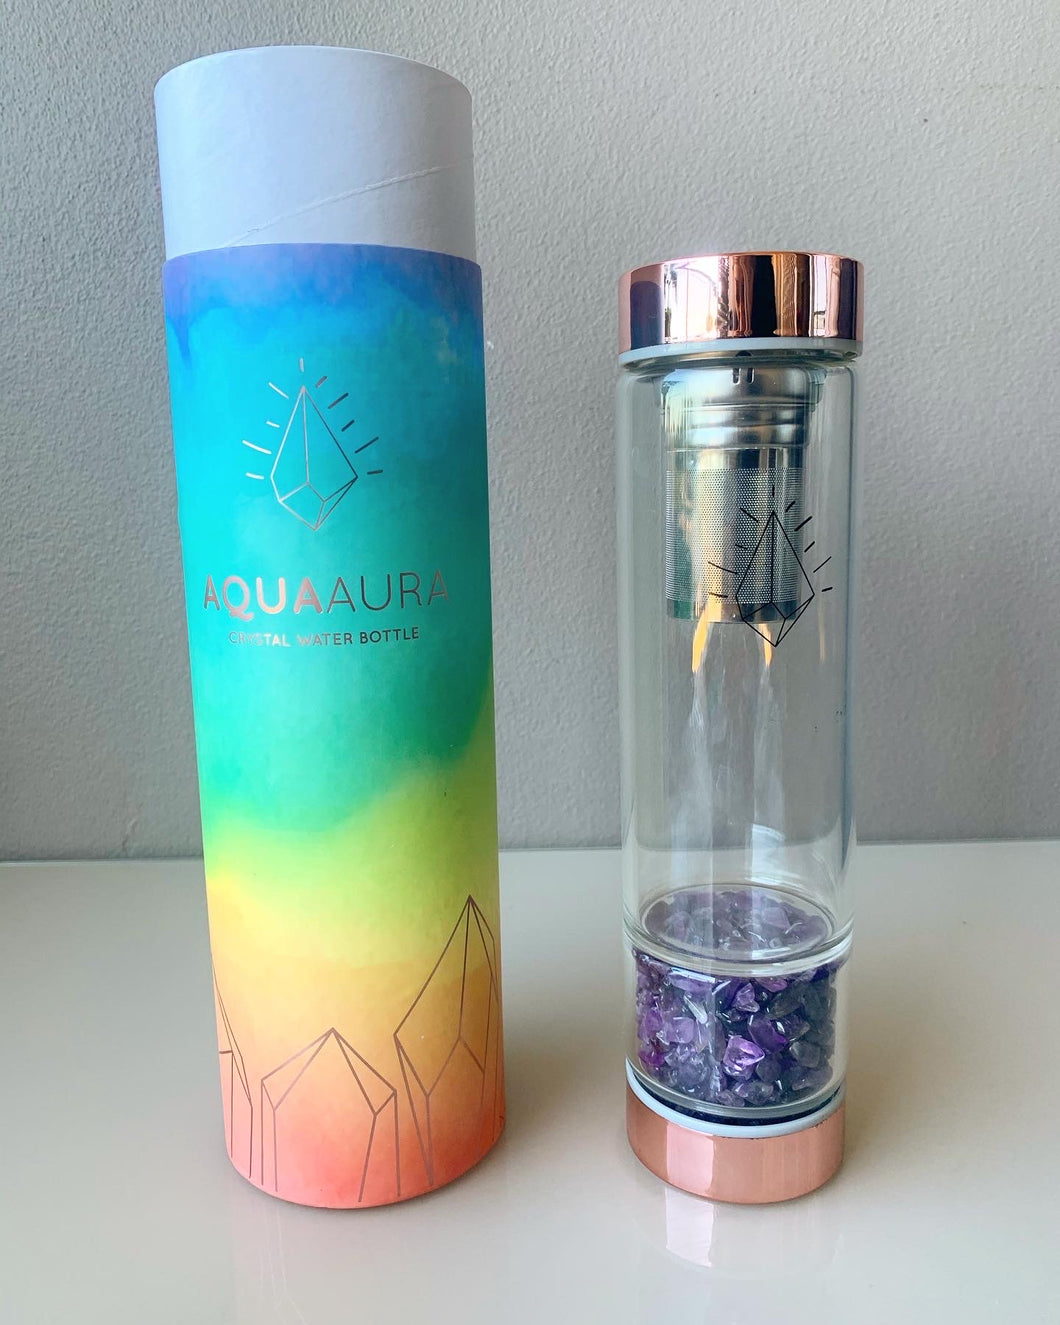 Aqua Aura Water Bottle  - Rose Gold with FREE Tea Infuser